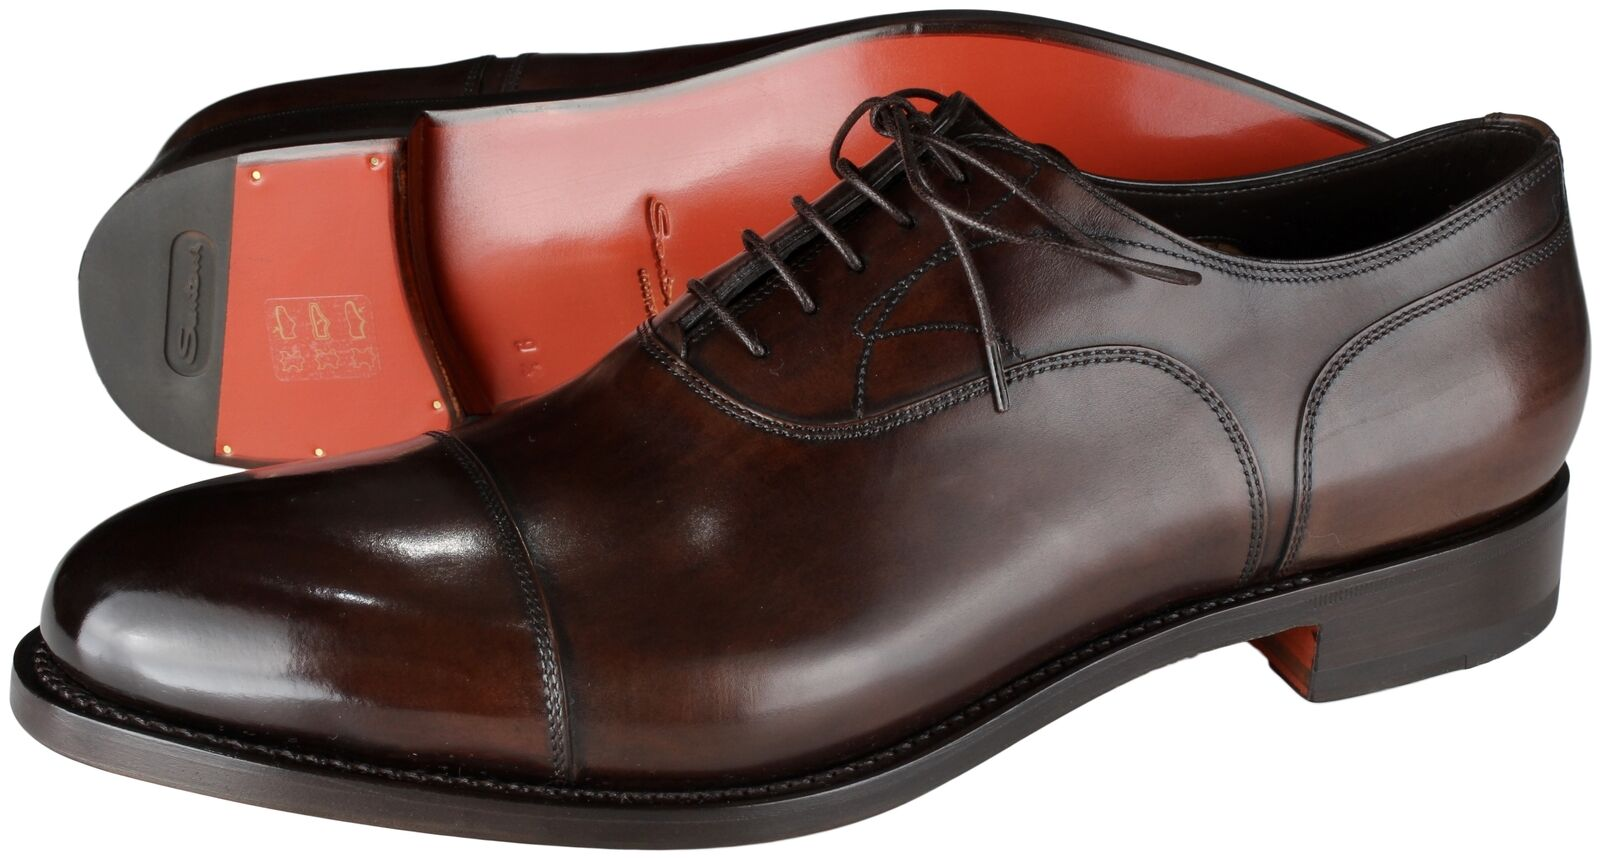 NWB SANTONI OXFORD GOODYEAR Scarpe dark brown crafted Italy